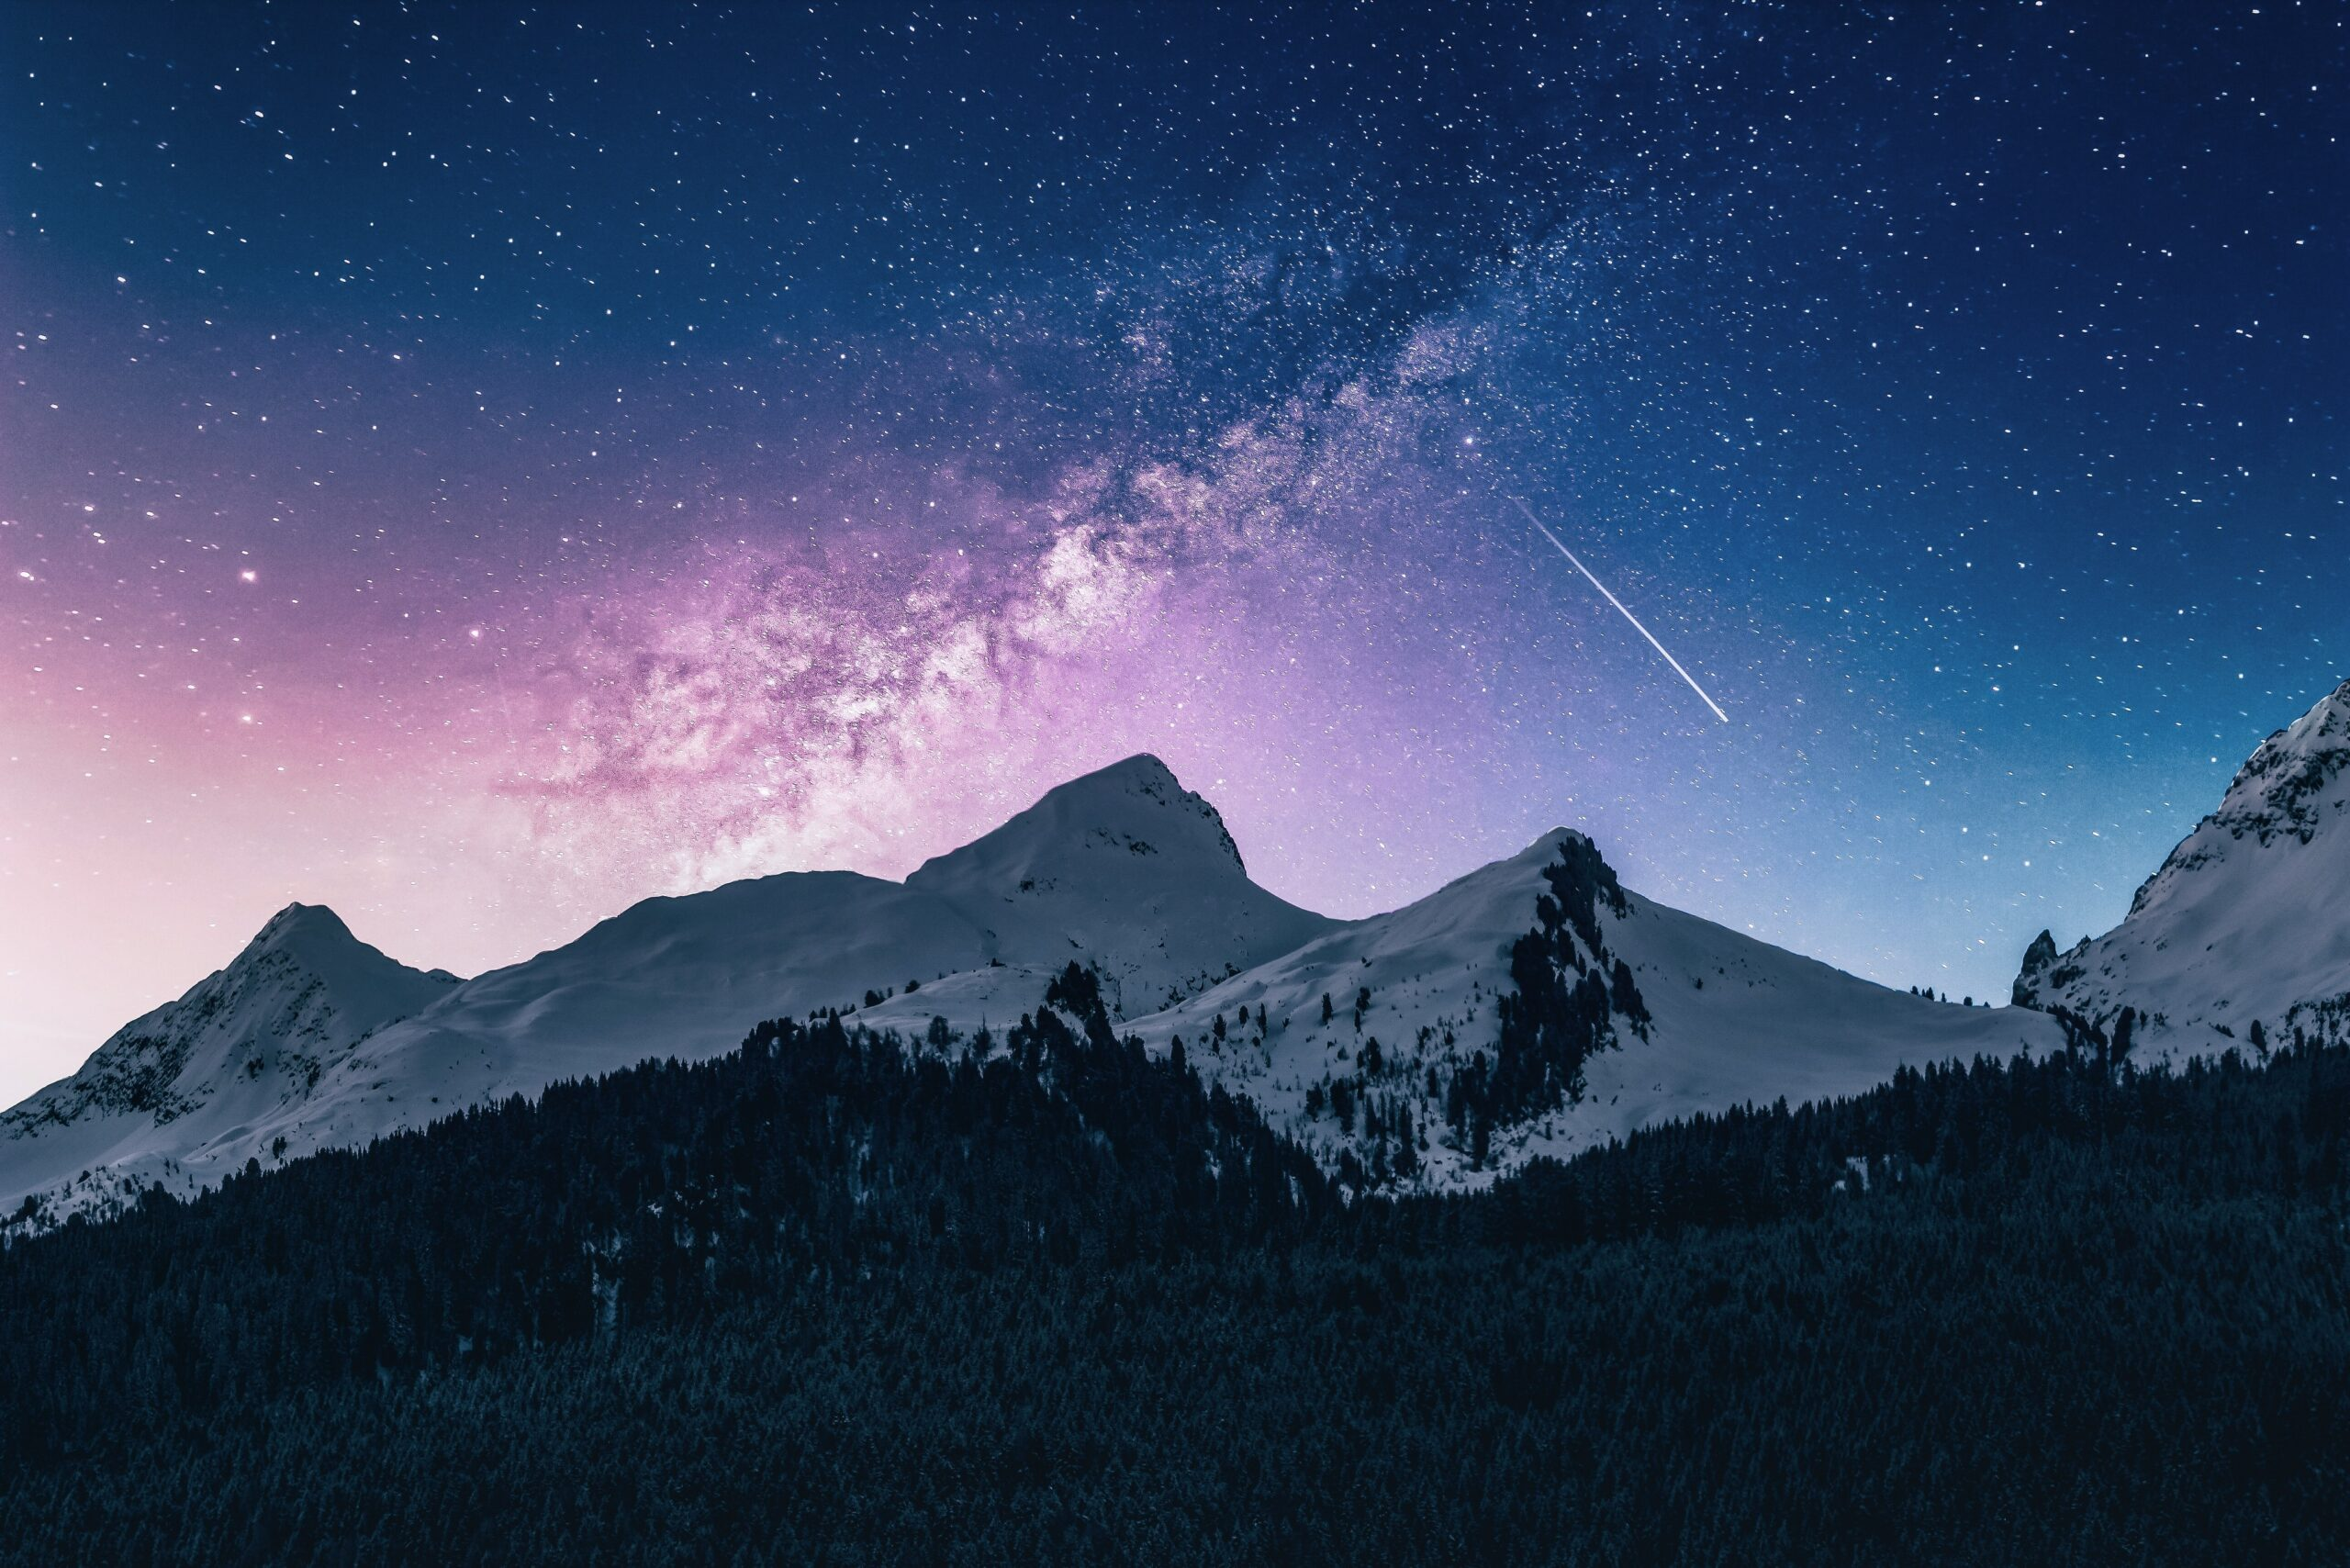 How to edit Astrophotography in Photoshop